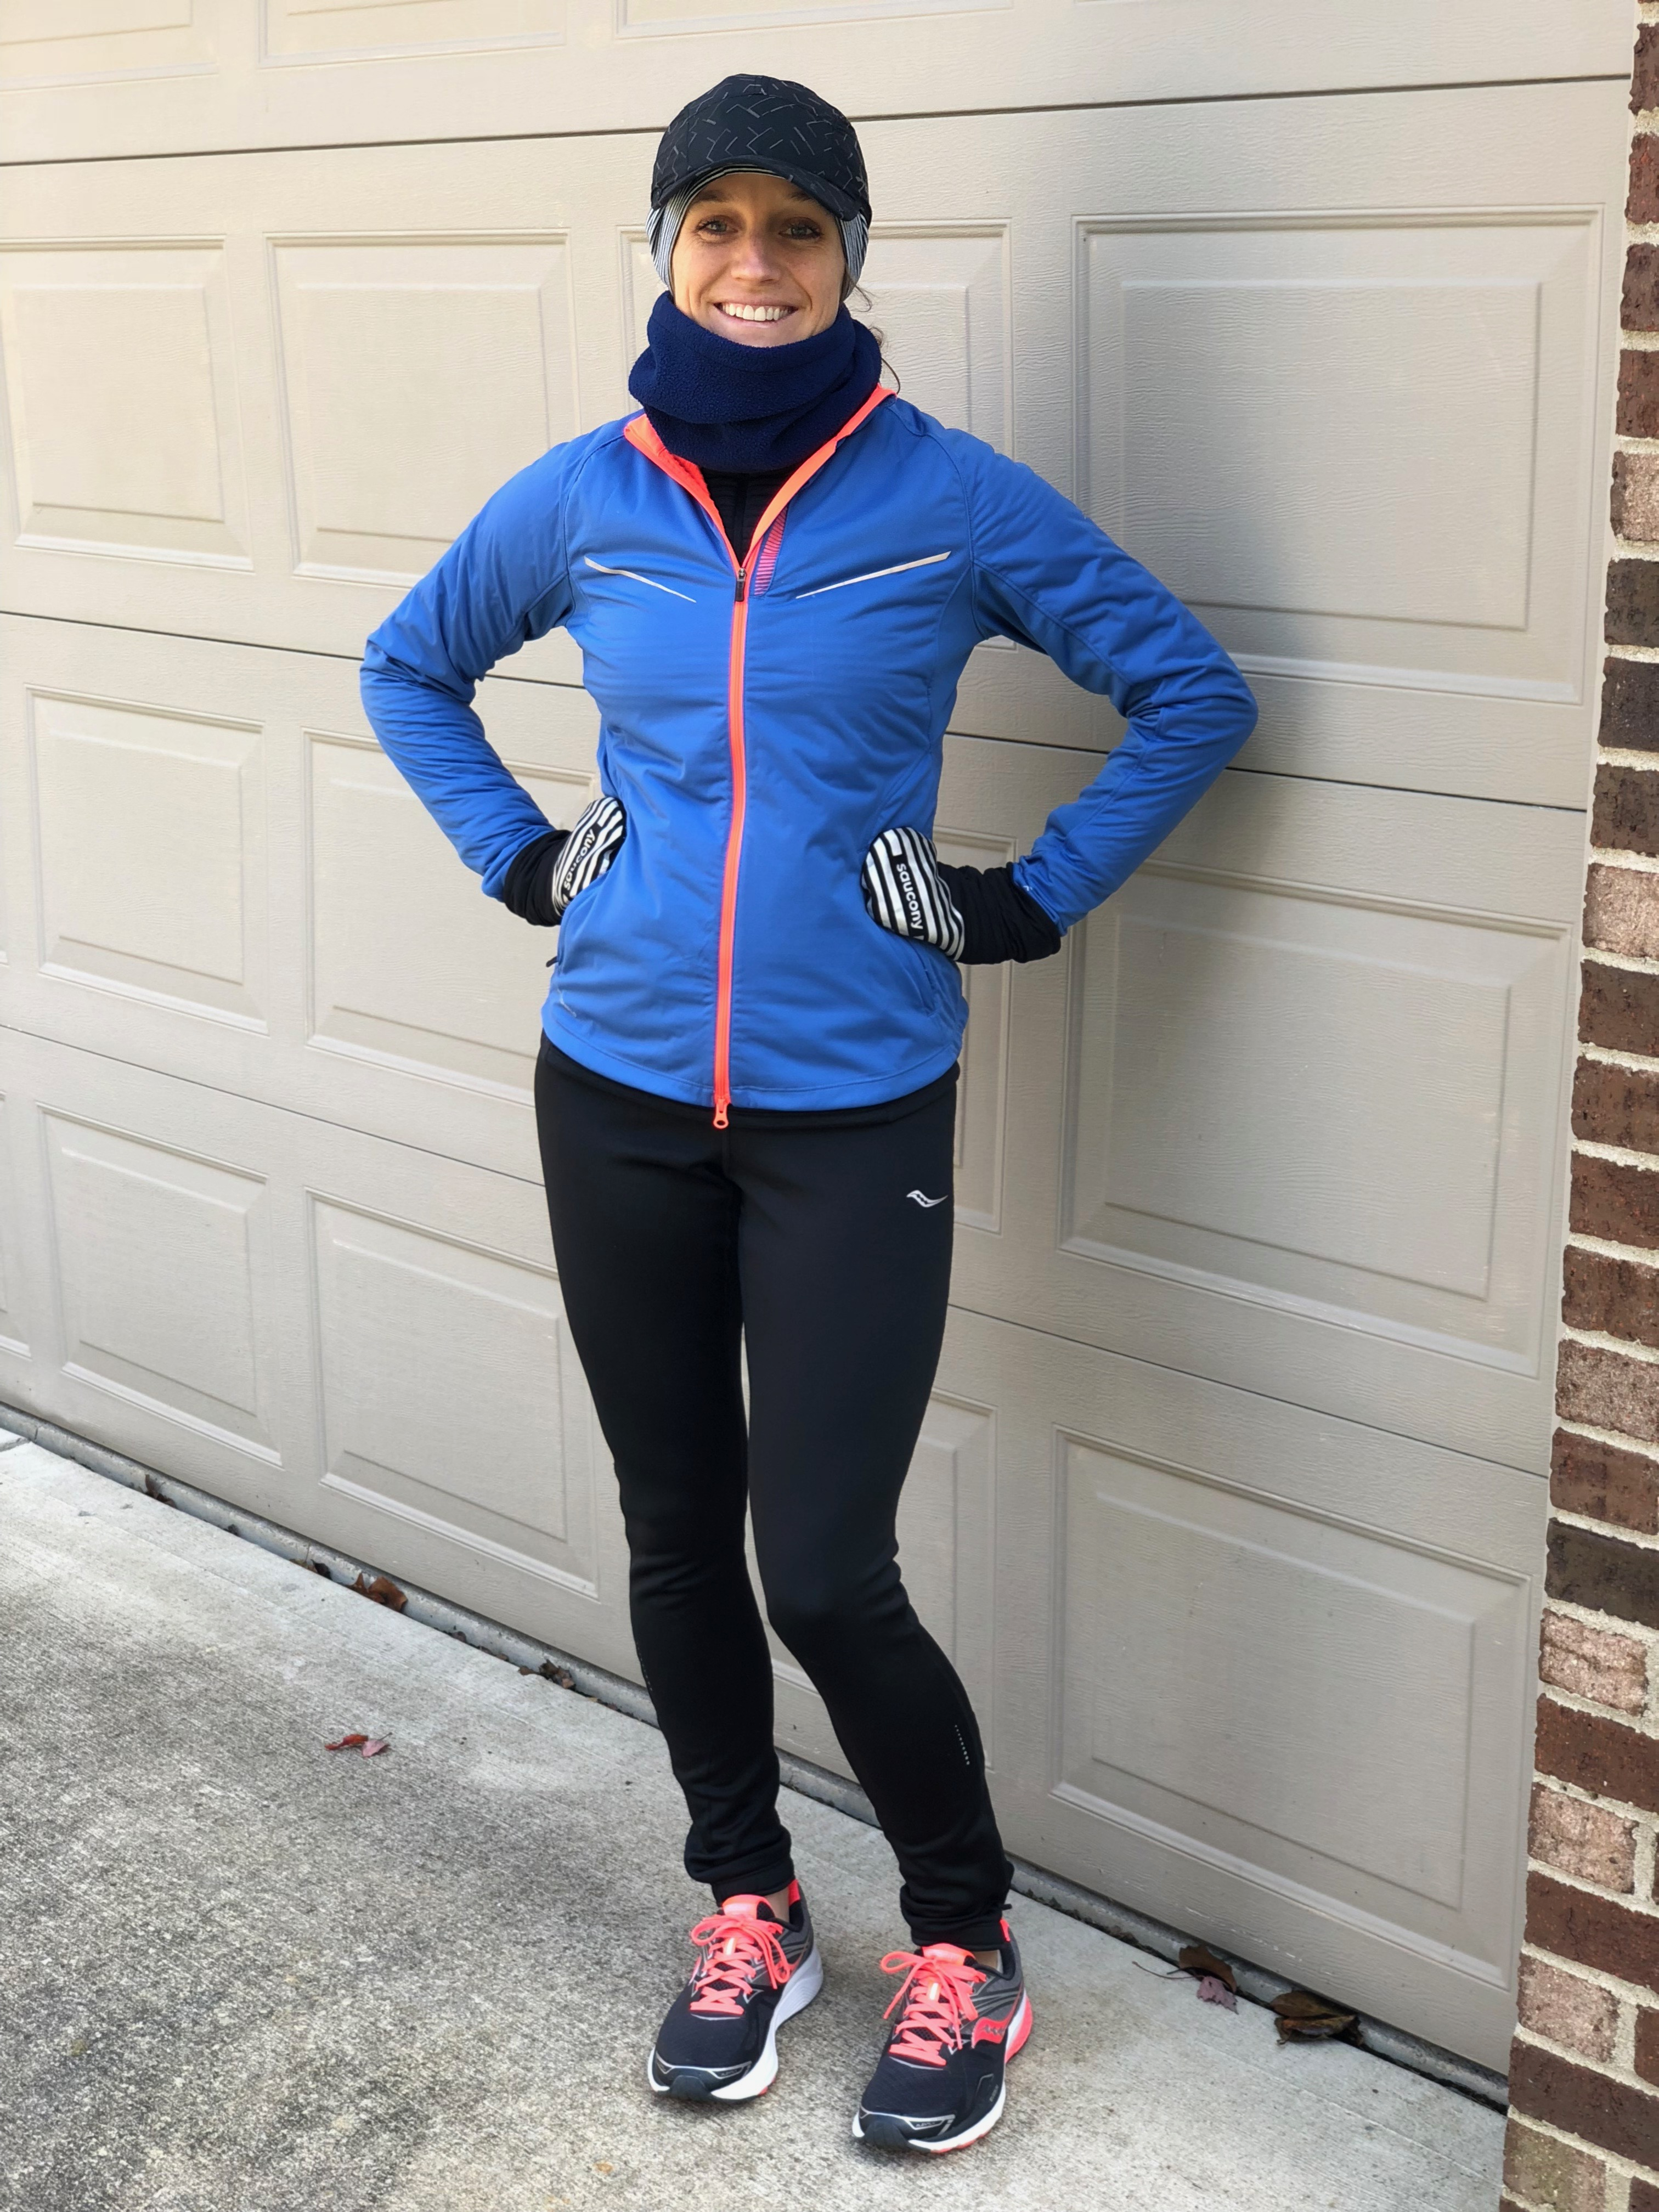 Winter Running Gear- What to Wear at Every Temperature